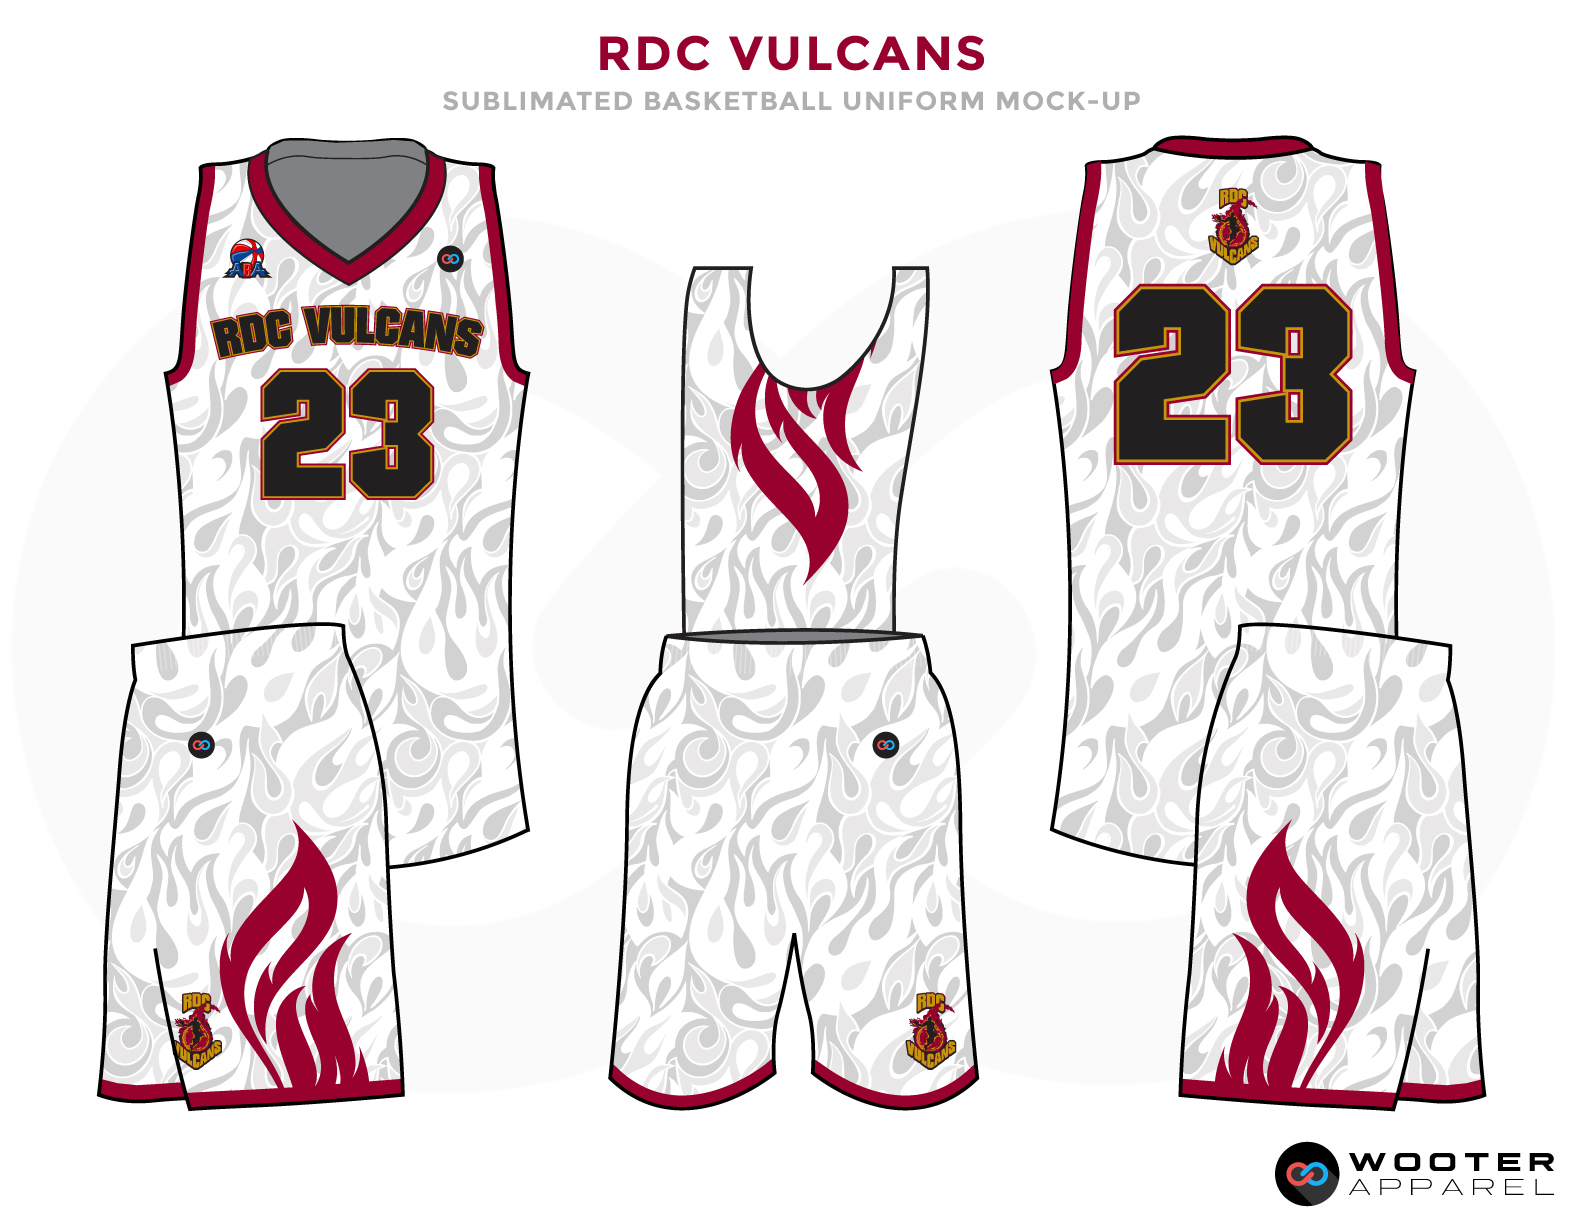 RDC VULCANS White Grey Pink and Black Basketball Uniforms, Jersey and Shorts